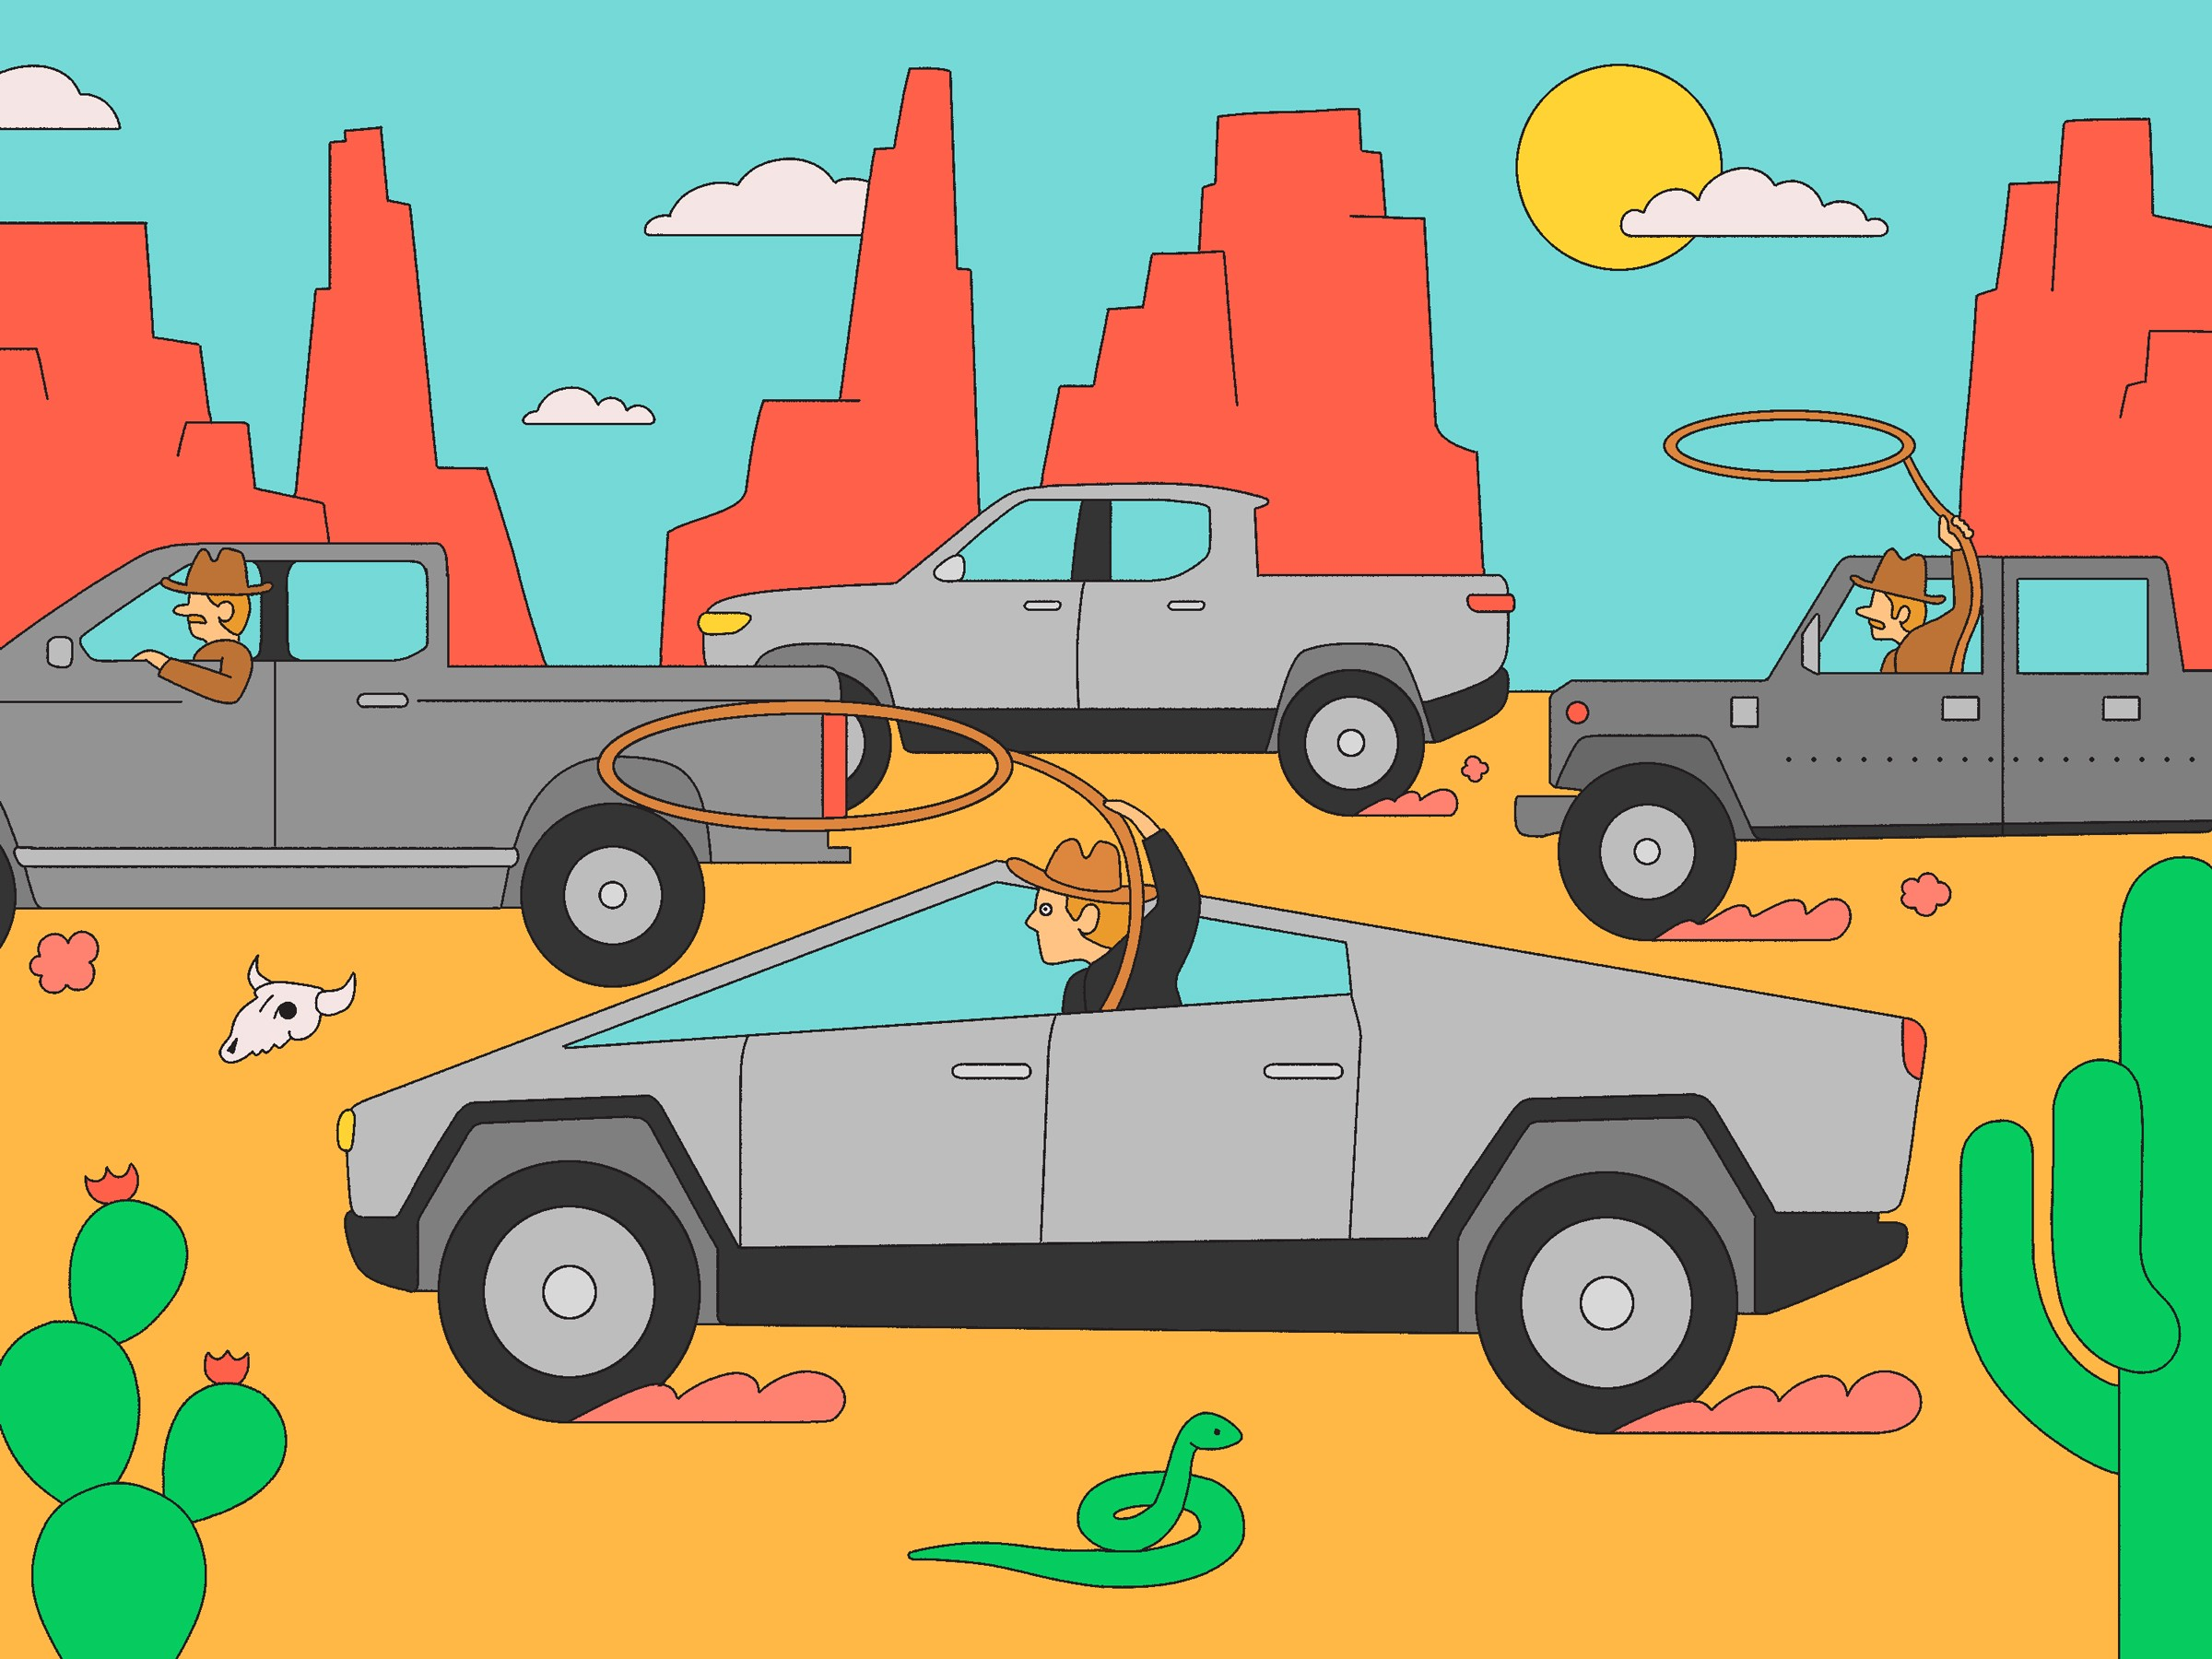 An illustration of cowboy characters with lassos driving Tesla Cybertrucks.